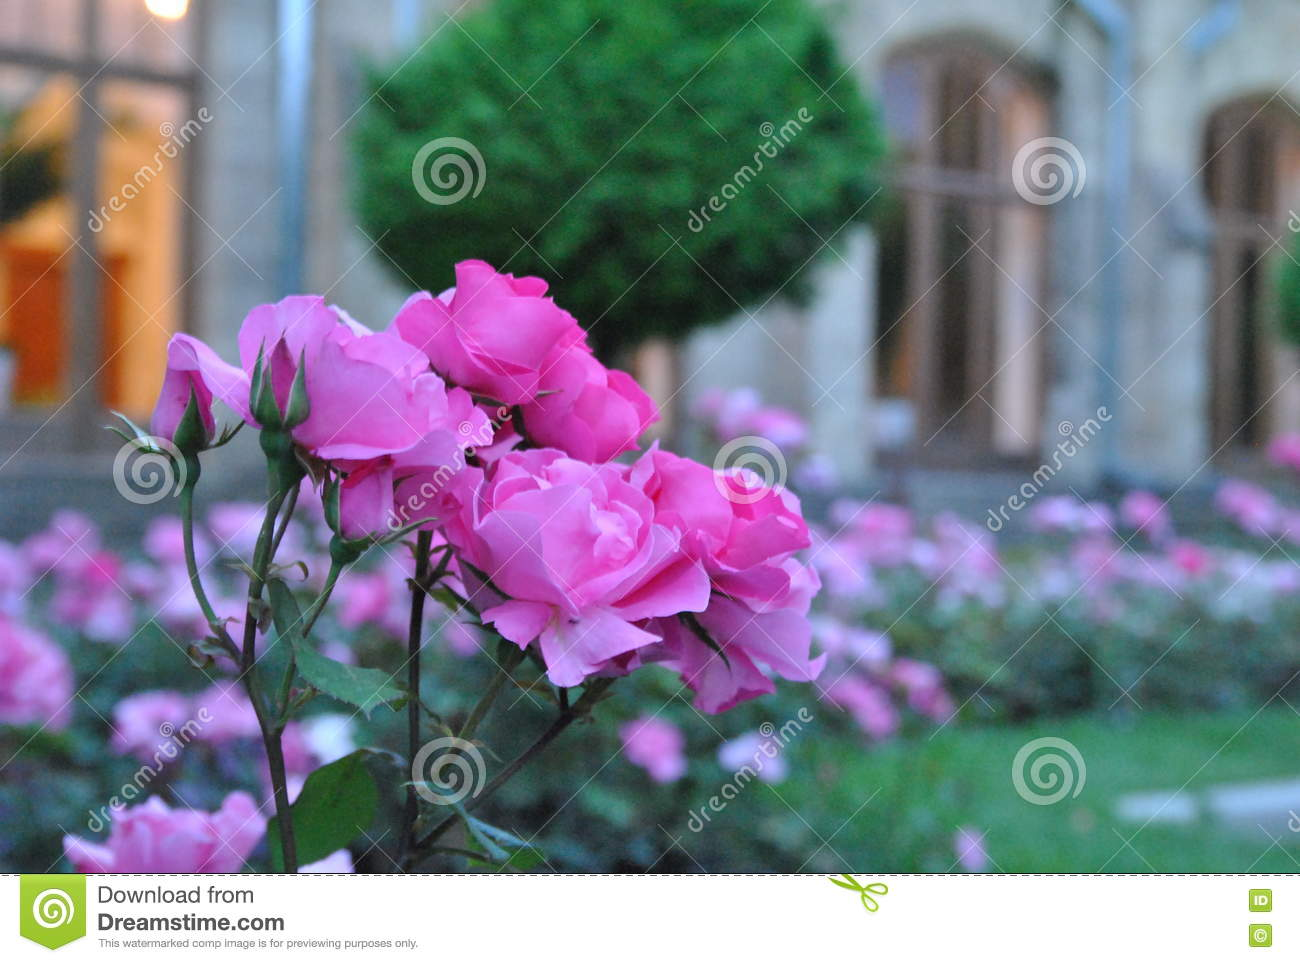 Roses d 39 arbuste sur un parterre photo stock image 80935230 for Parterre de roses photos